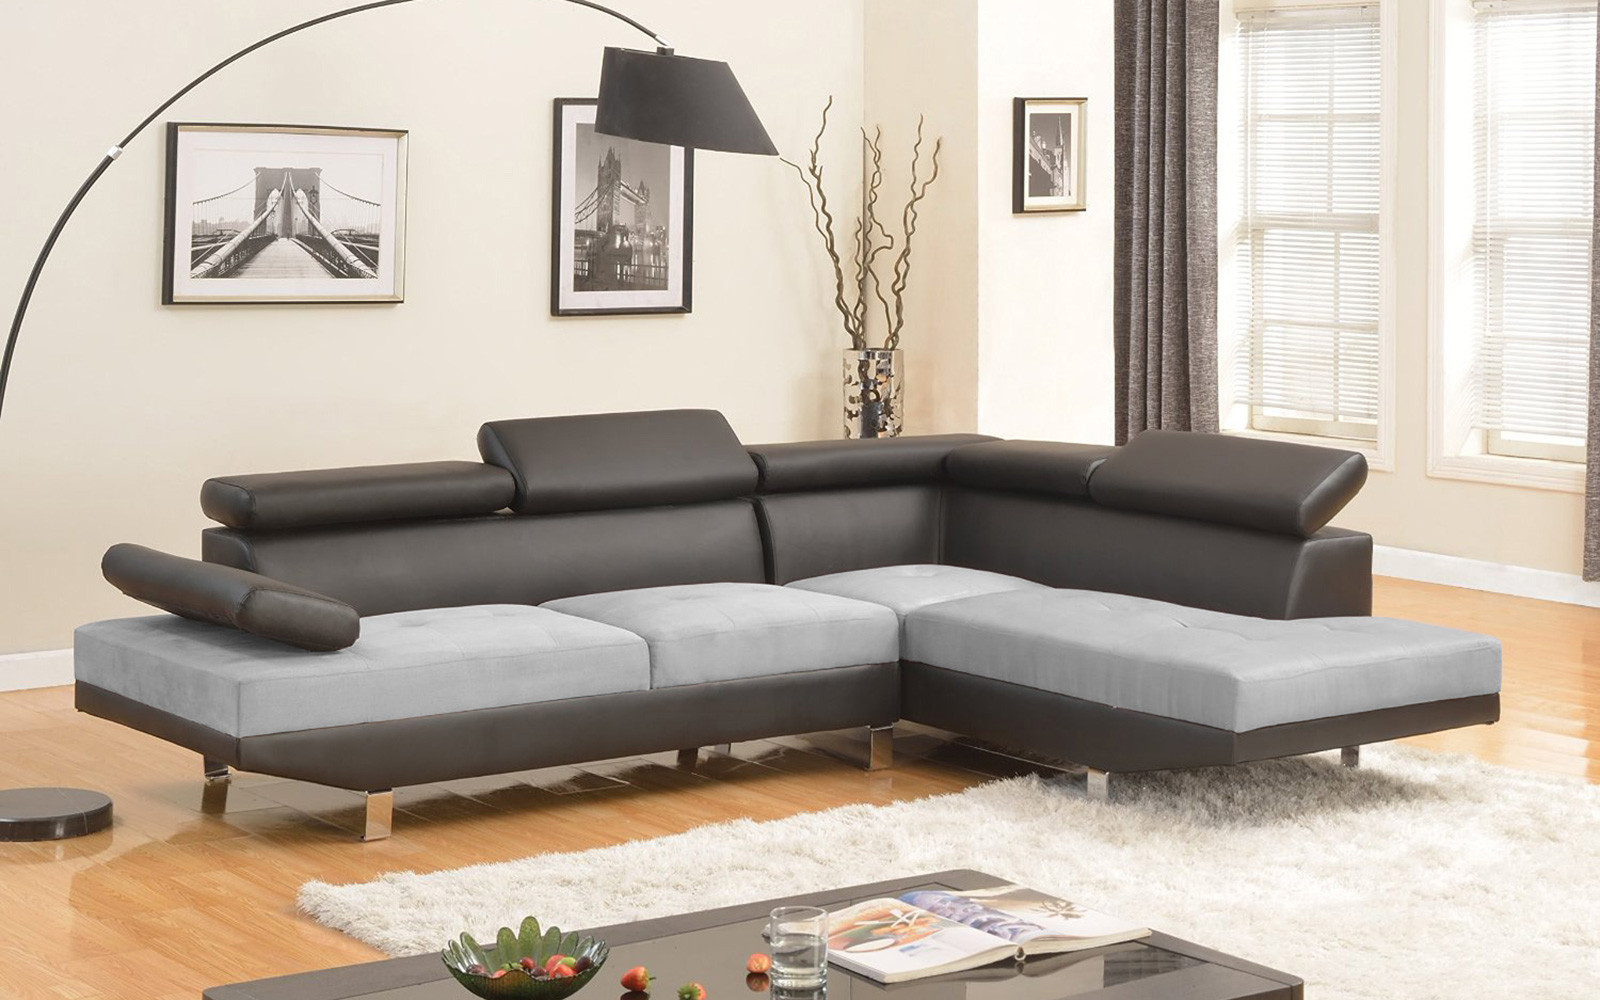 2 Piece Modern Microfiber and Bonded Leather 2 Tone Sectional Sofa by